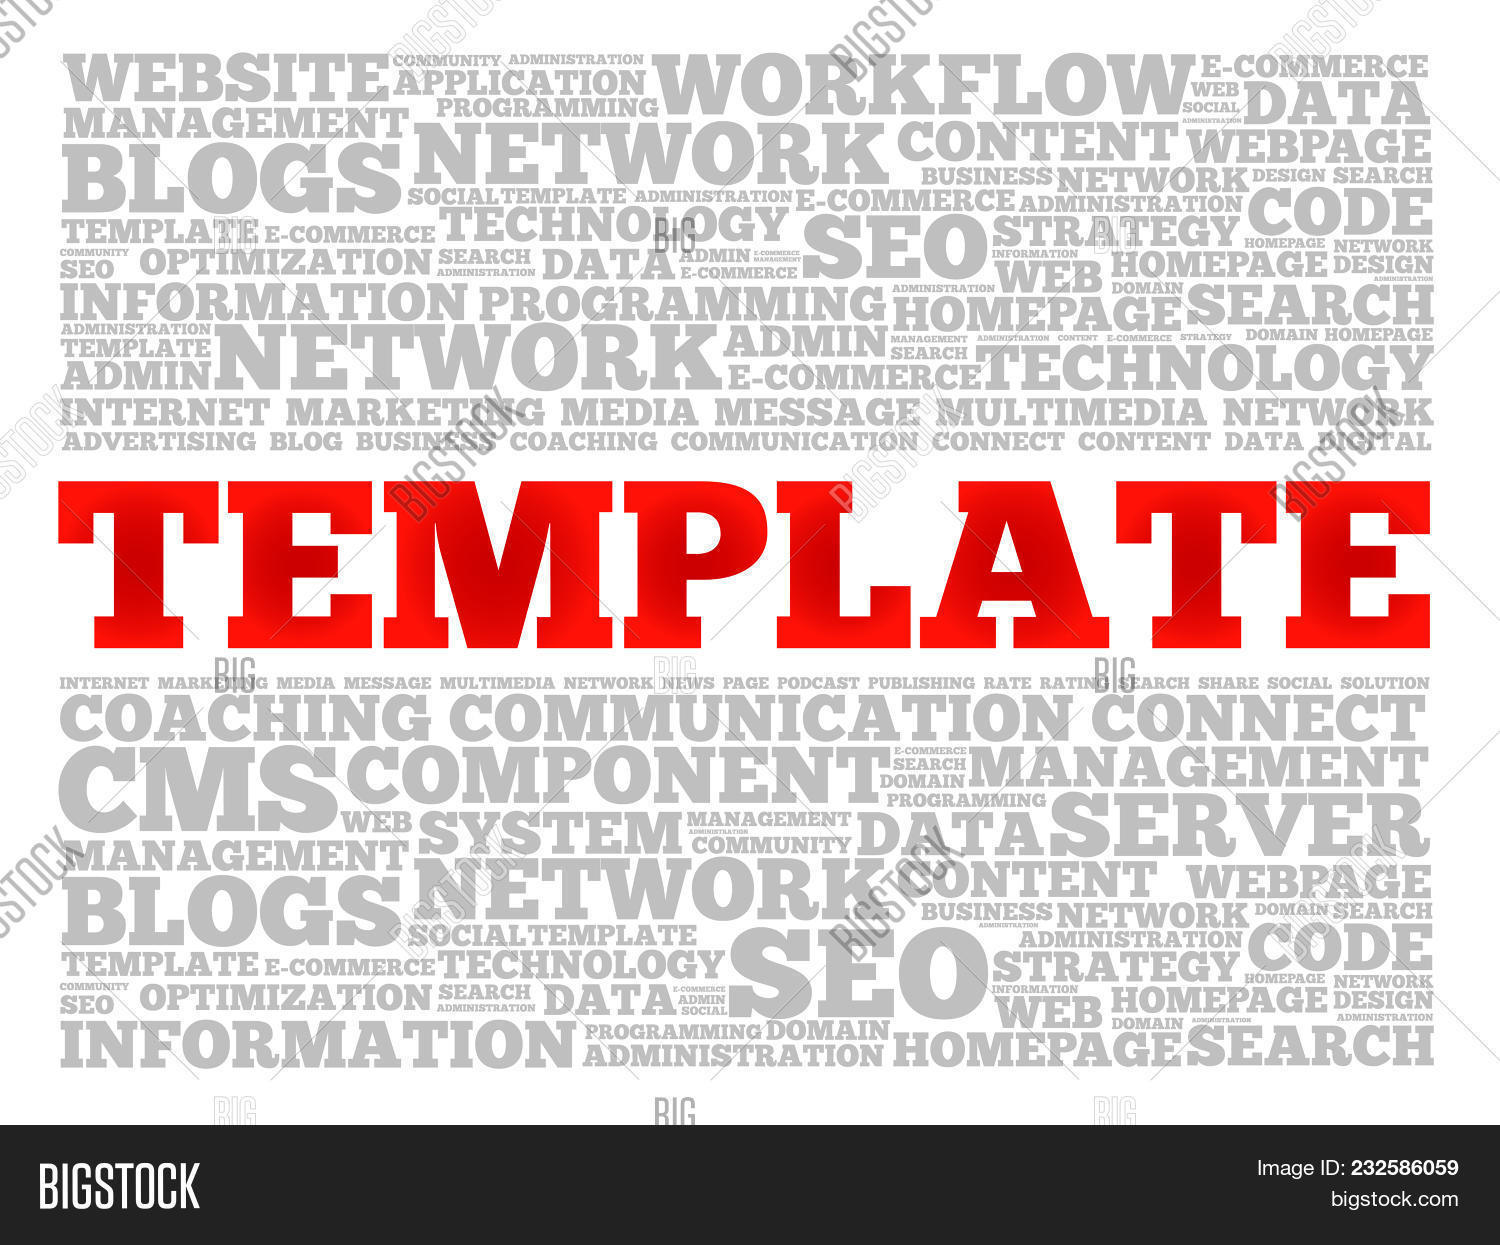 Template word cloud image photo free trial bigstock template word cloud collage technology business concept background maxwellsz